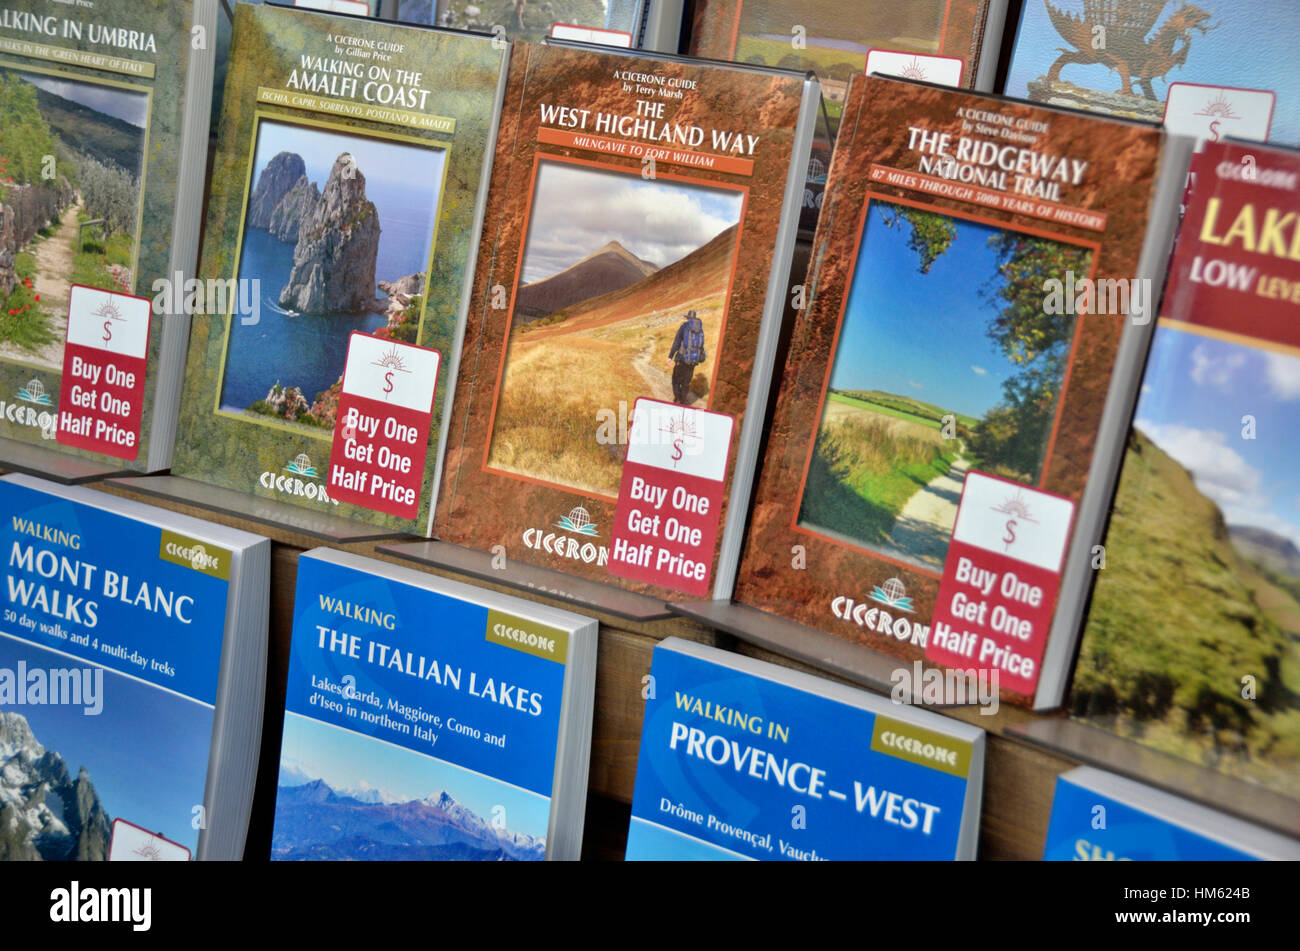 Cicerone walking guide books in a shop window display - Stock Image